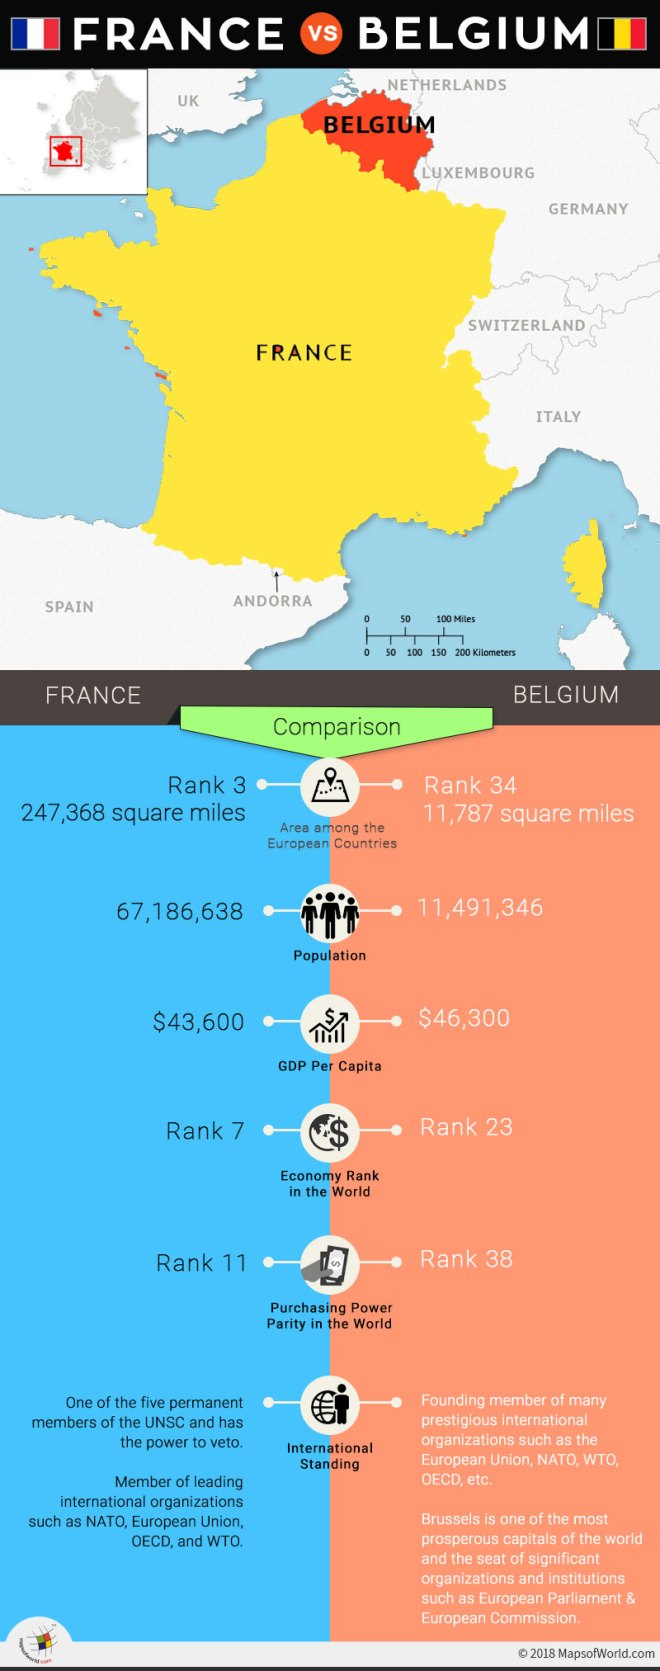 Infographic with comparison between France and Belgium